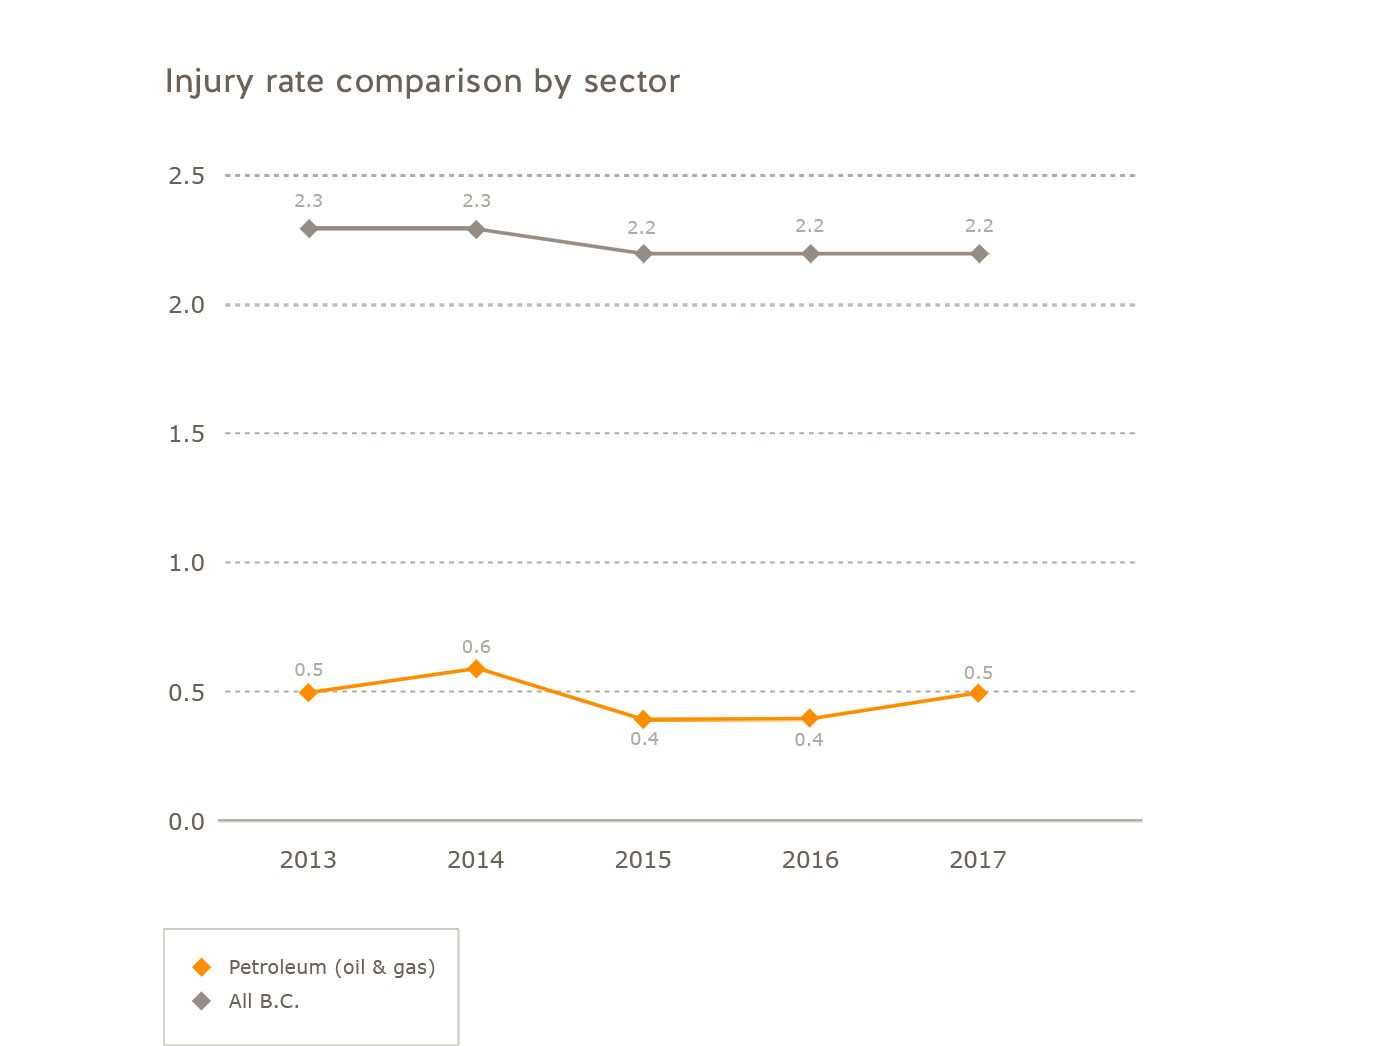 Injury rate comparison oil and gas industry for 2013 to 2017. Injury rate for oil and gas: 2013 = 0.5, 2014 = 0.6, 2015 = 0.4, 2016 = 0.4, 2017 = 0.5. Injury rate for all of B.C.: 2013 = 2.3, 2014 = 2.3, 2015 = 2.2, 2016 = 2.2, 2017 = 2.2.